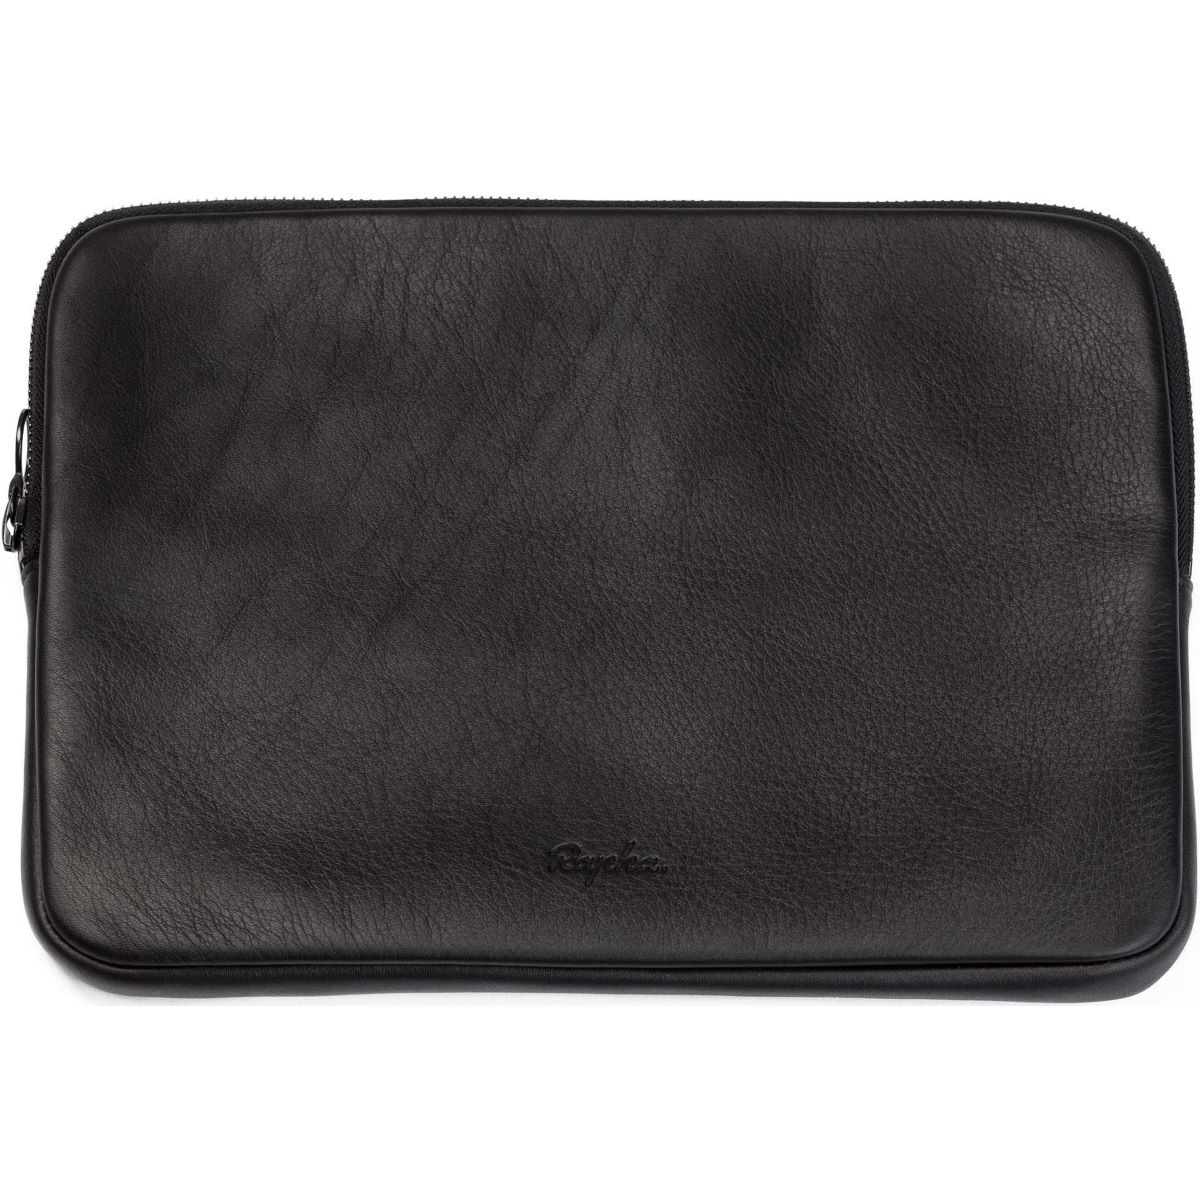 Rapha Large Leather Pouch - Bandoleras